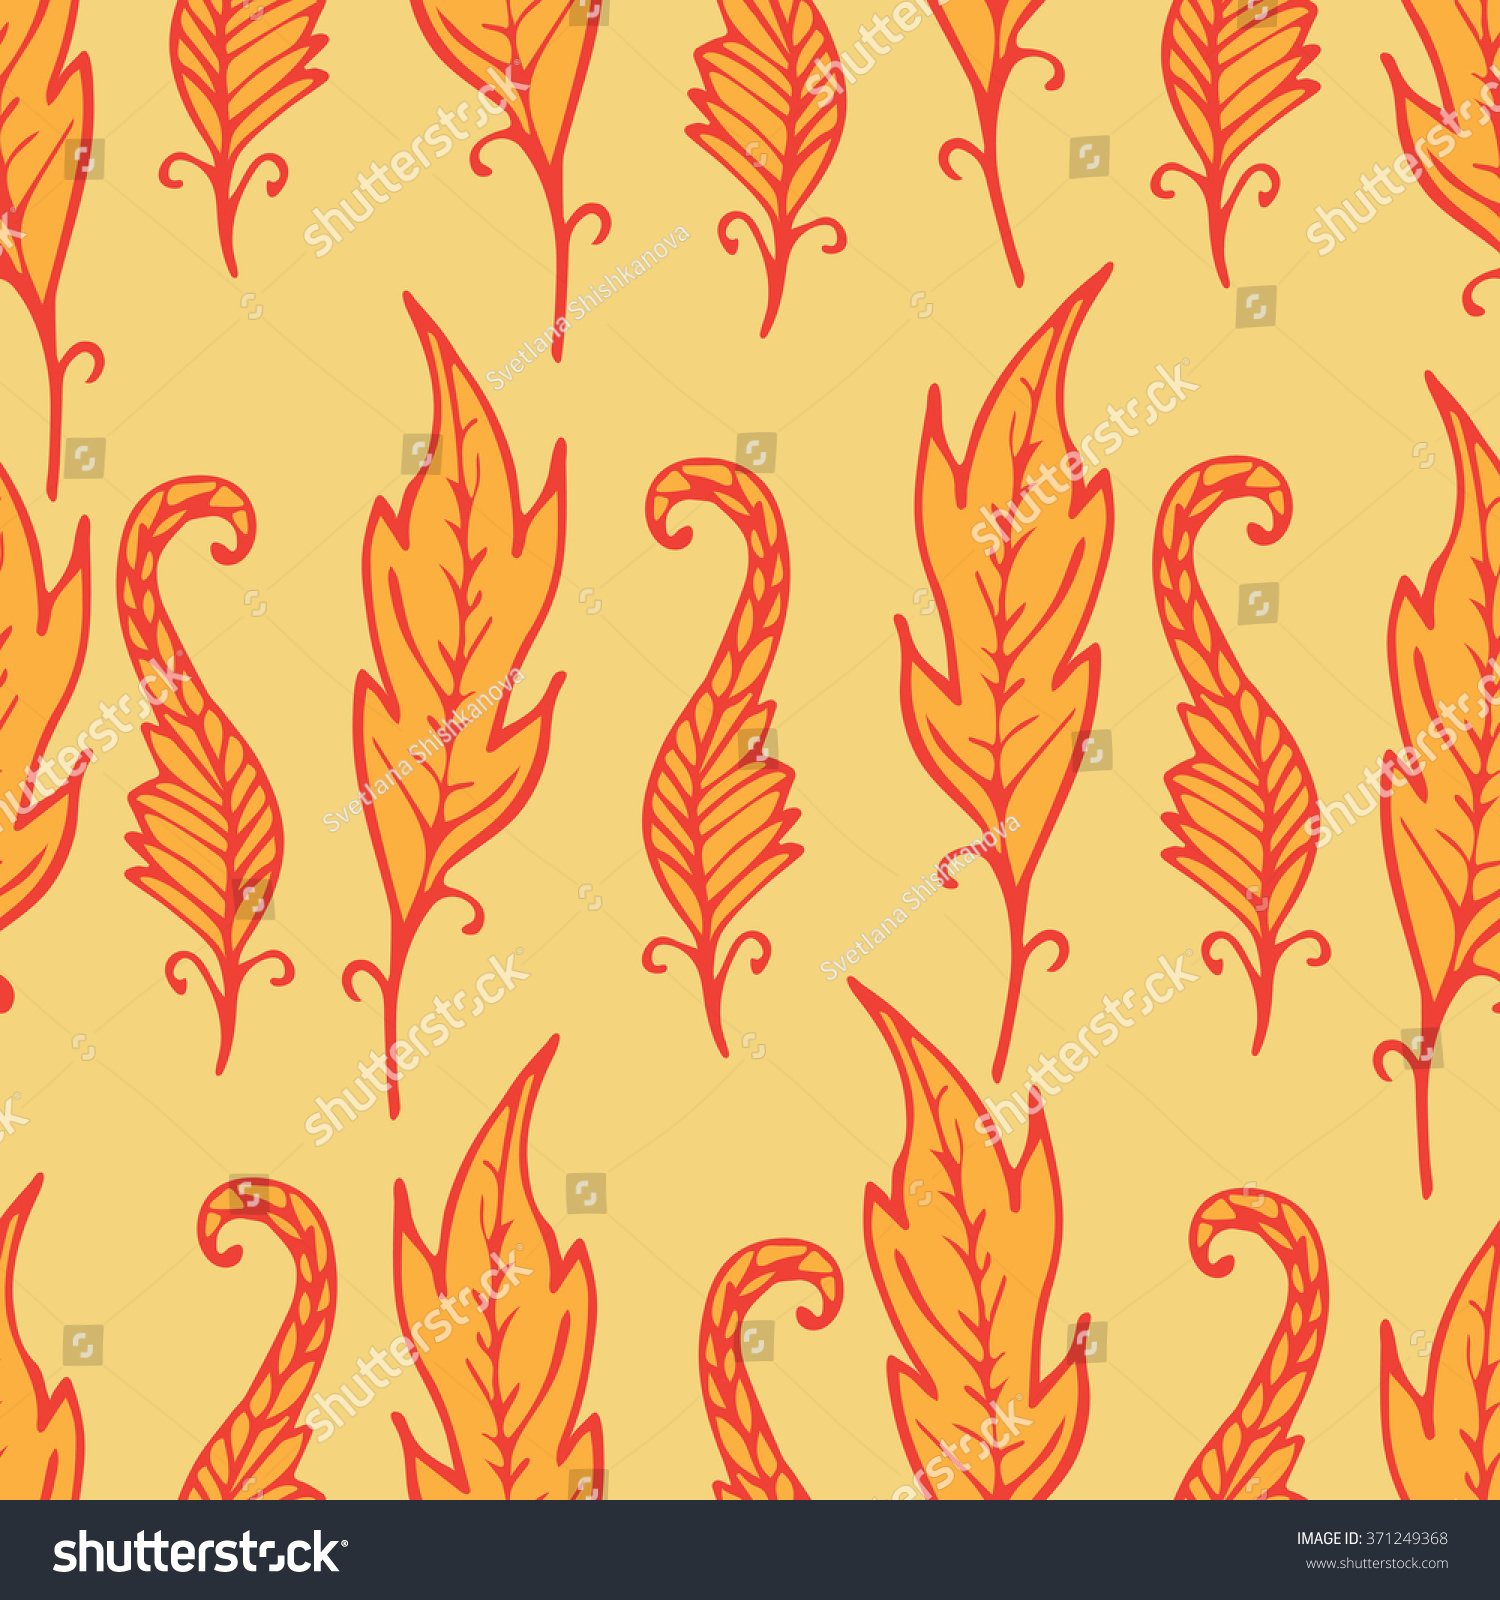 Simple Bright Seamless Floral Background Stock Vector   Short News ...